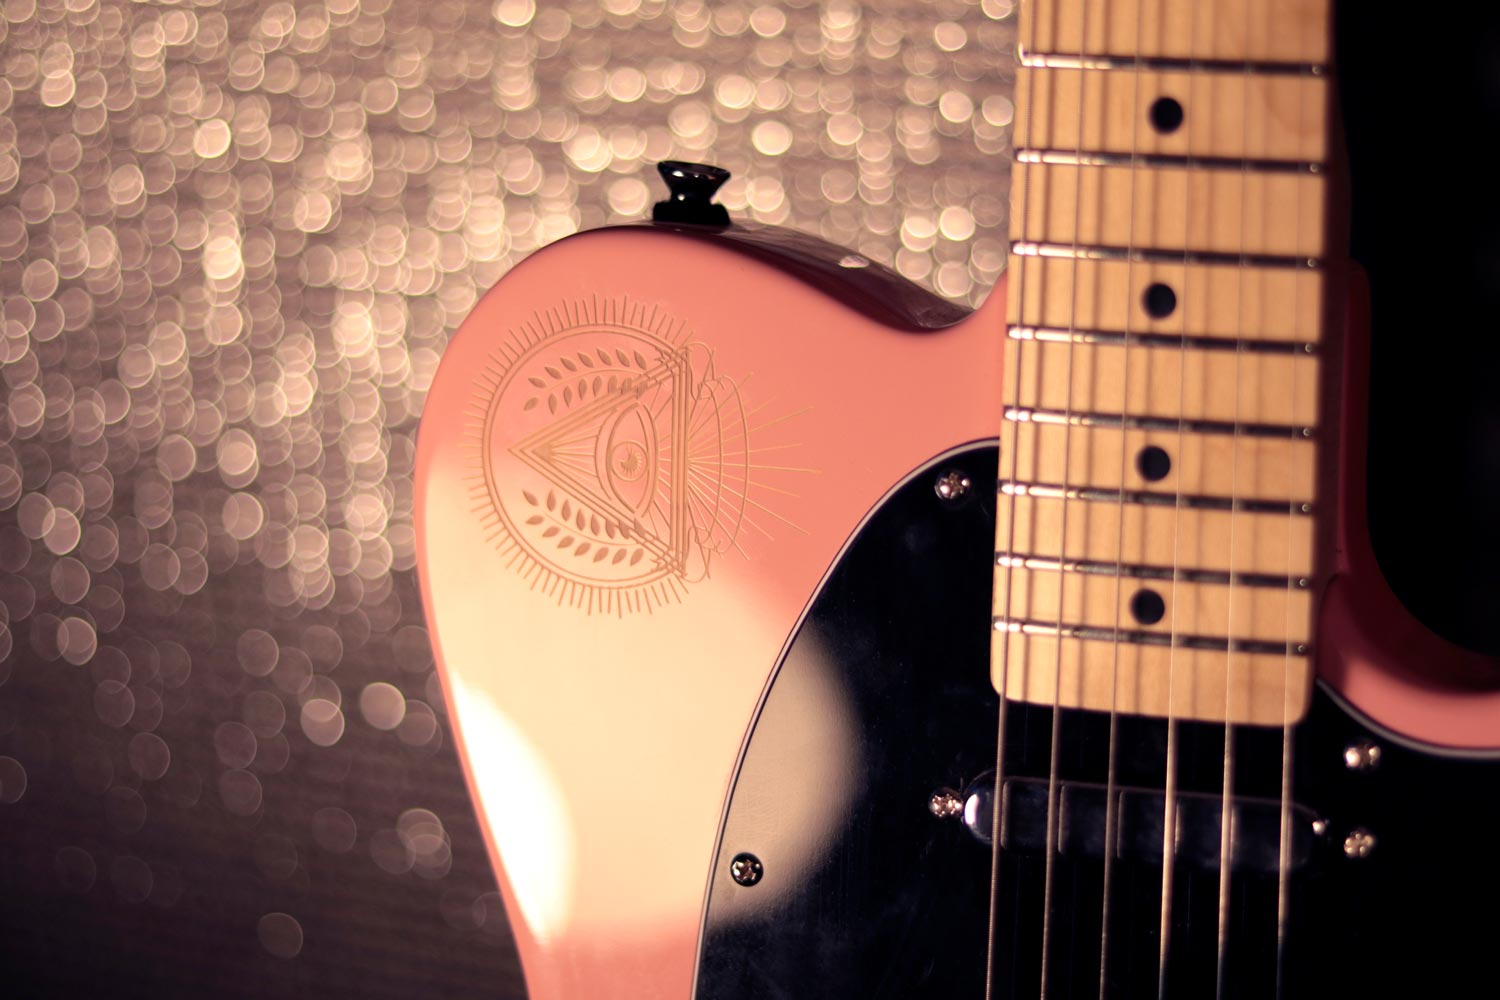 ripley guitare eagletone custom illuminatis